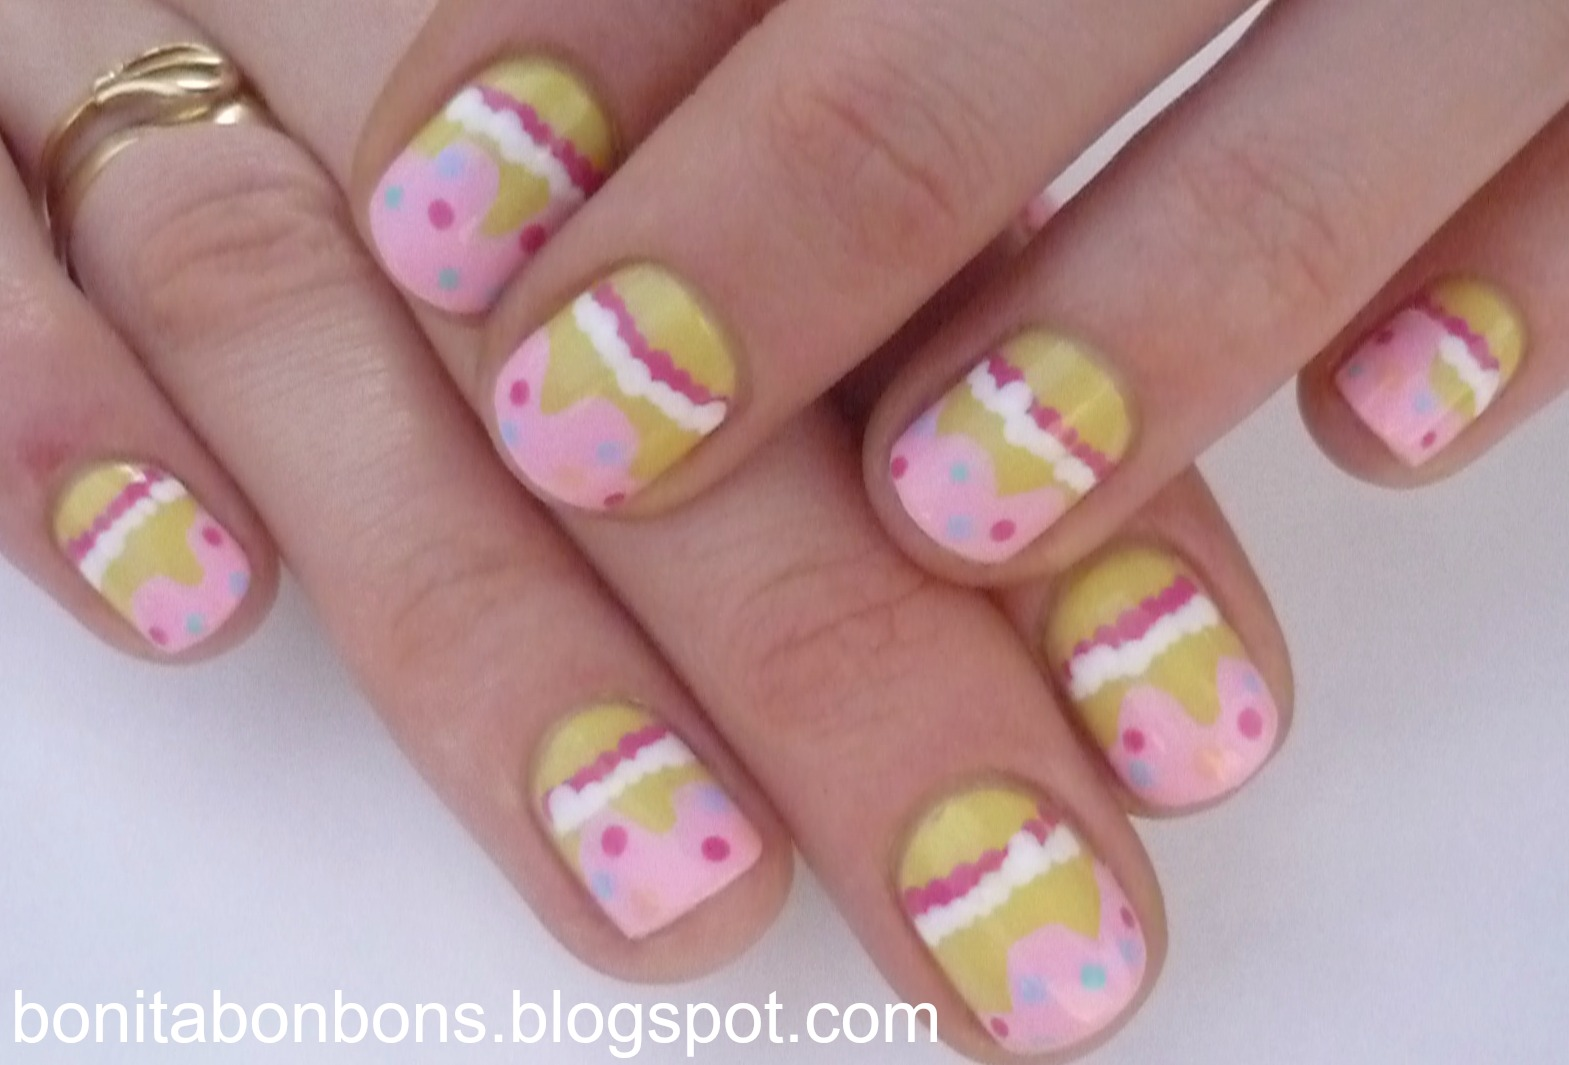 Cake Decorating Nails : Bonita bon bons: September 2012